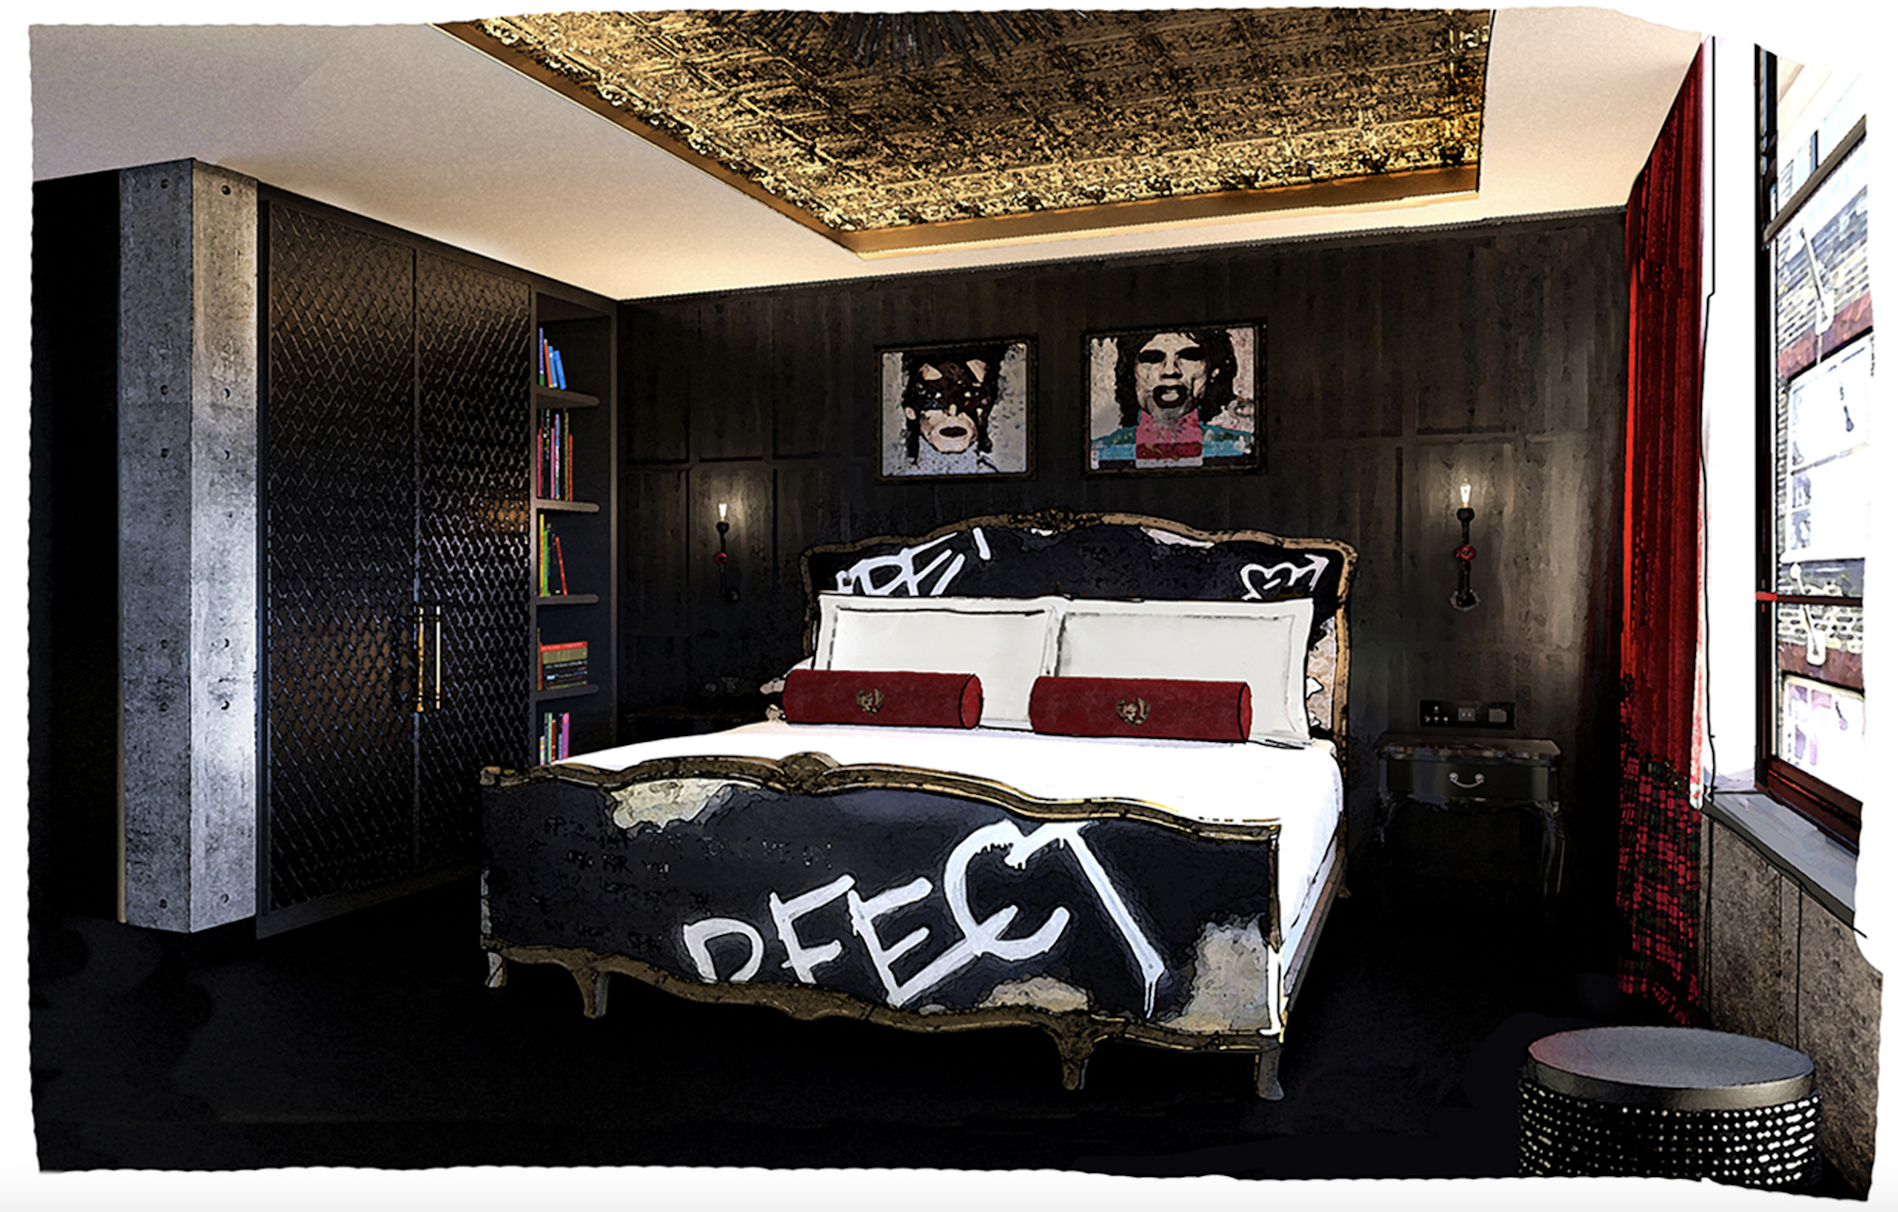 This is one hot London hotel opening!  The 'Punk Room at Chateau Denmark on Denmark Street - a modern interpretation of the raw, anti-establishment movement